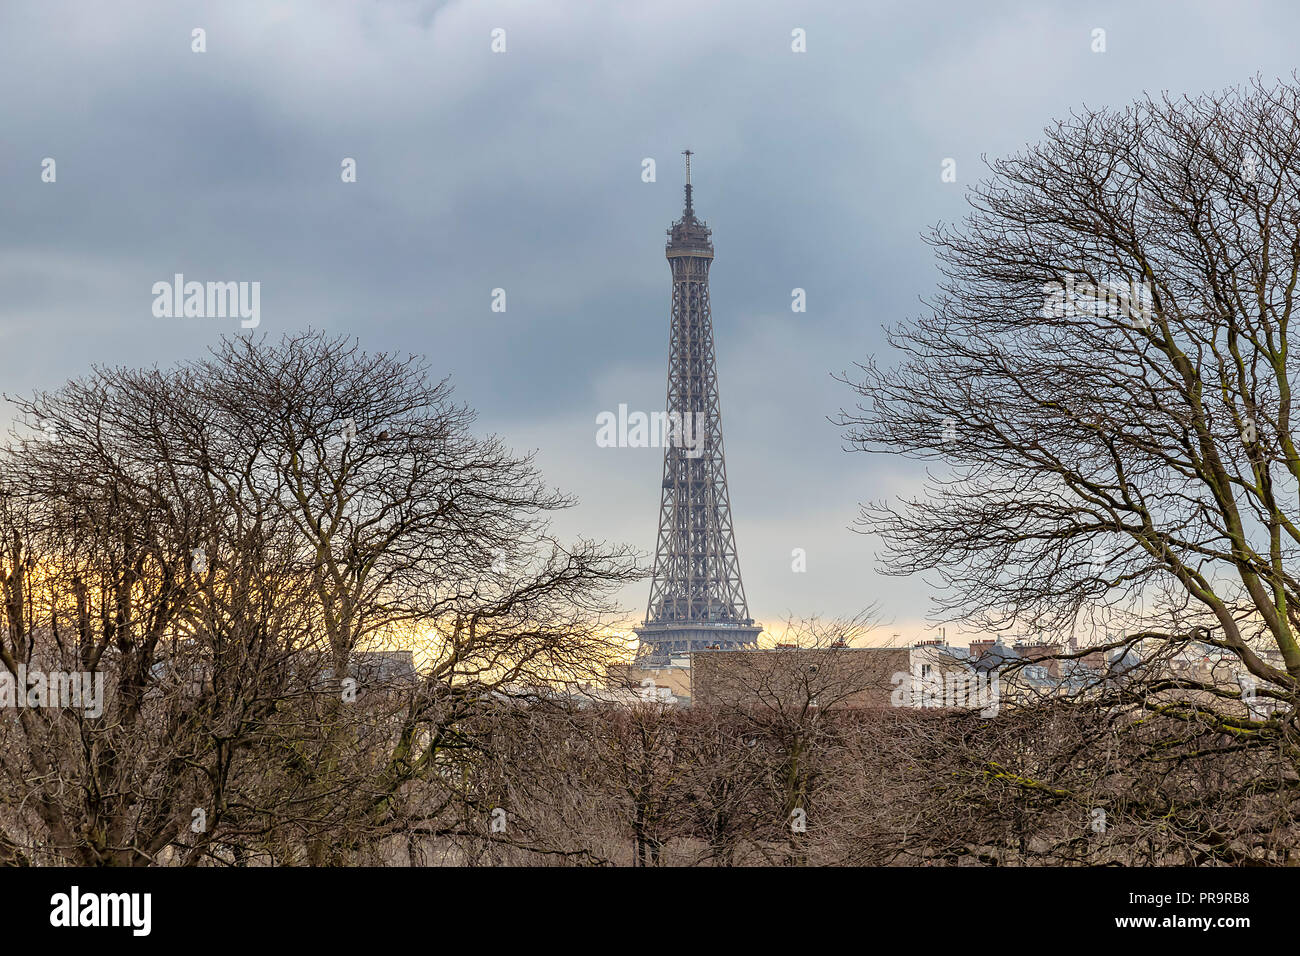 Sunset in Paris, in winter, with Eiffel tower in the far view - Stock Image